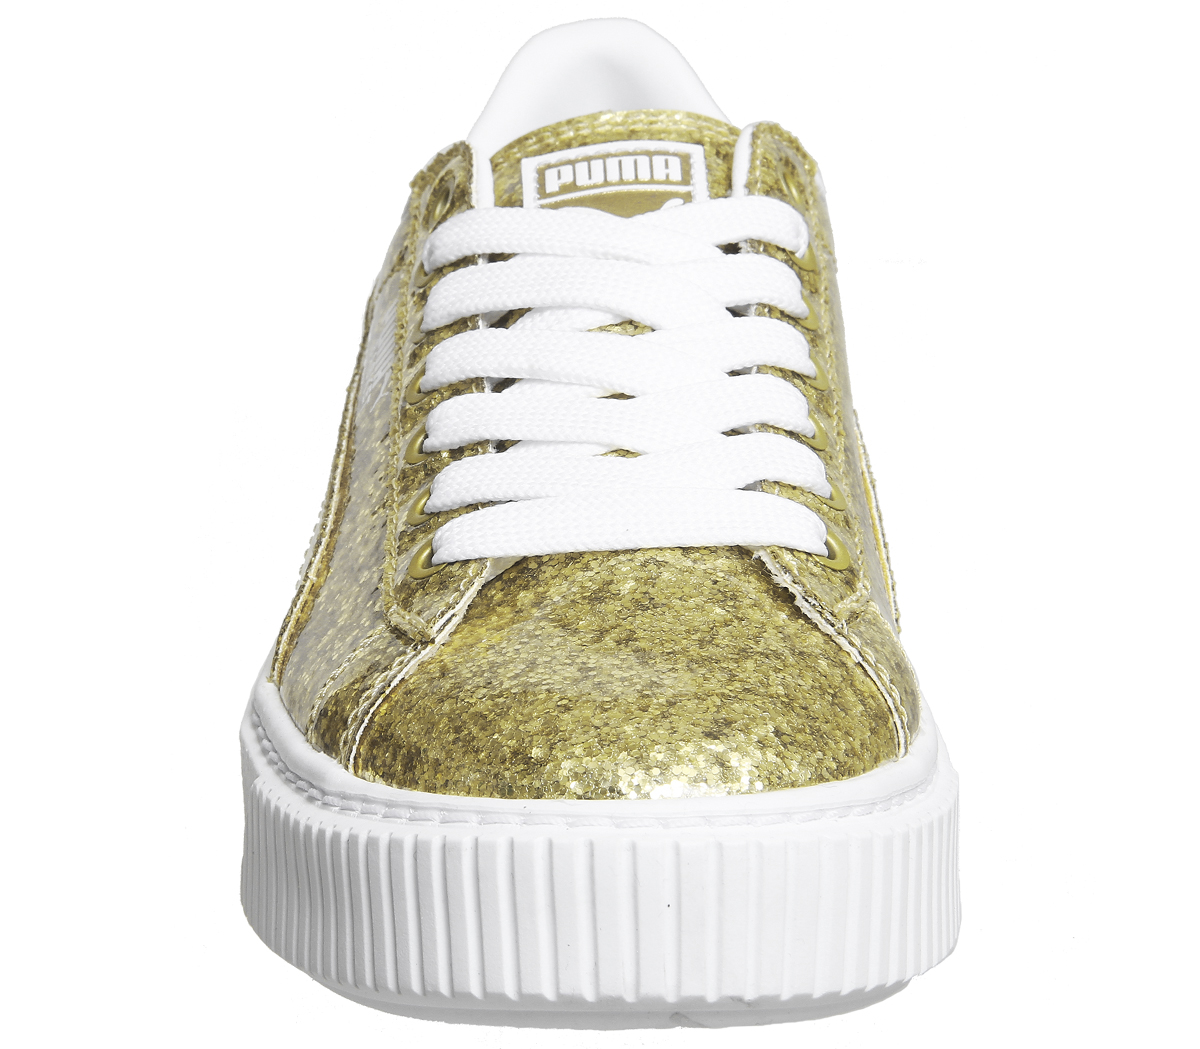 2bdcb708e23830 Womens Puma Basket Platform Trainers Gold Glitter White Trainers Shoes